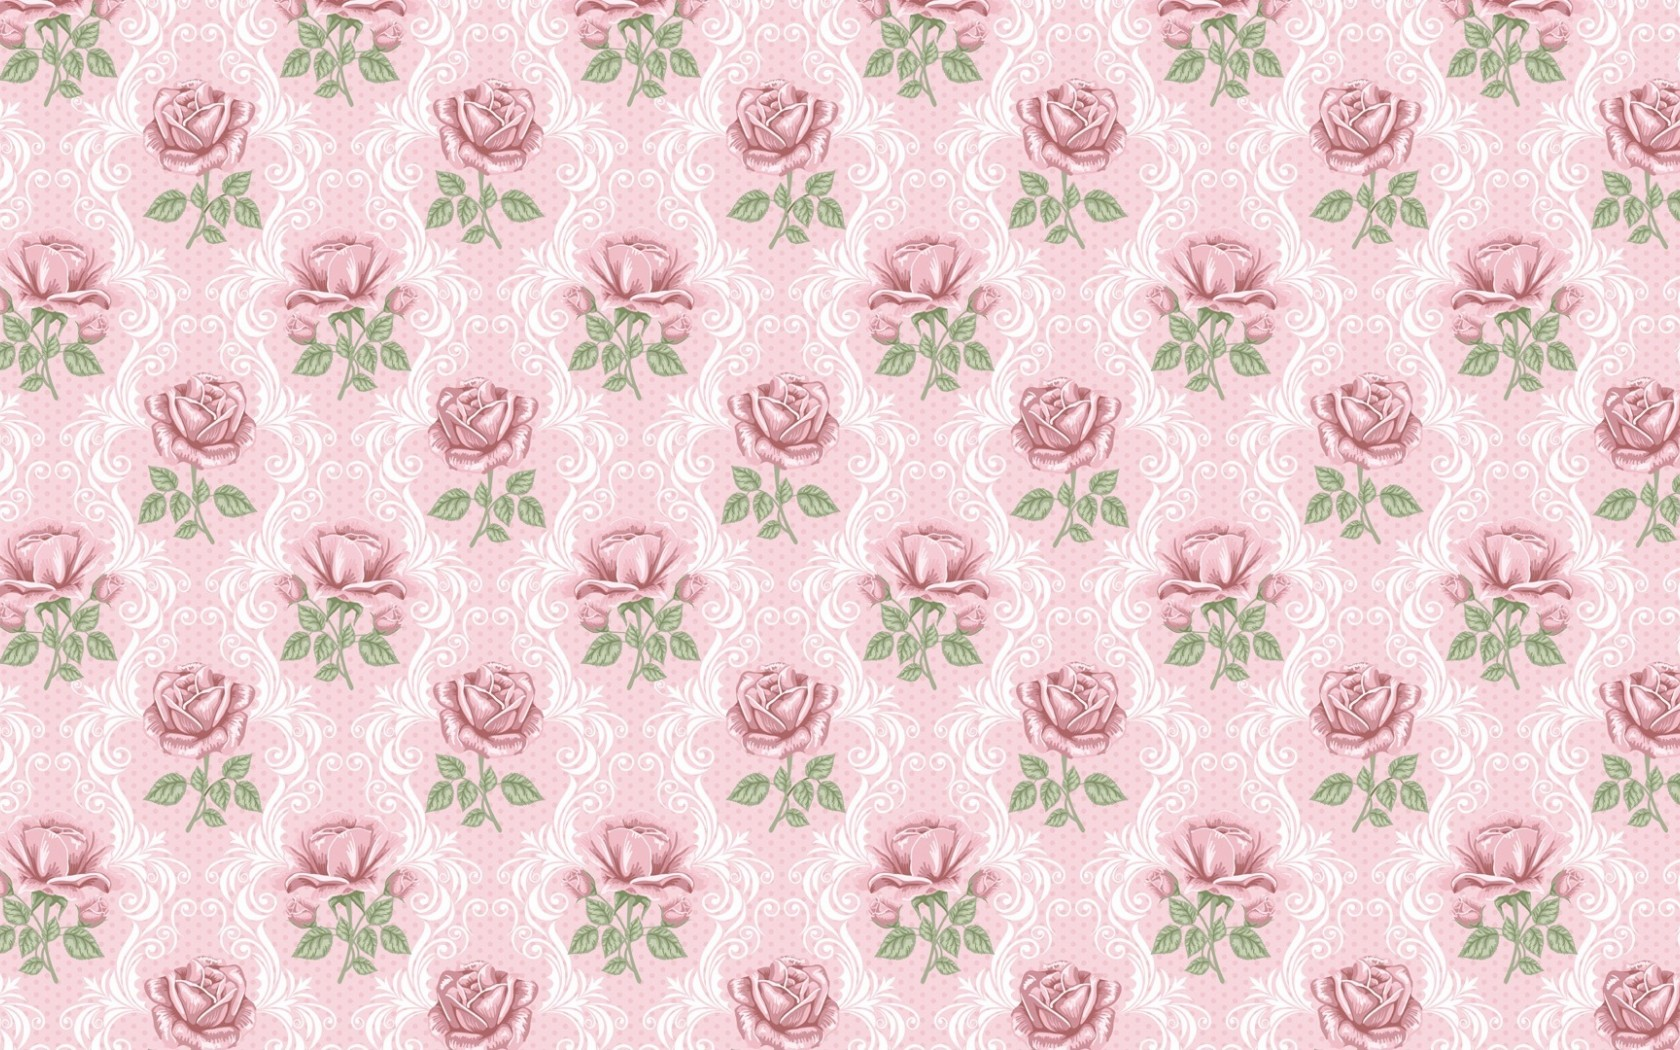 Image Delicate Pink Roses Pattern Wallpapers And Stock Photos